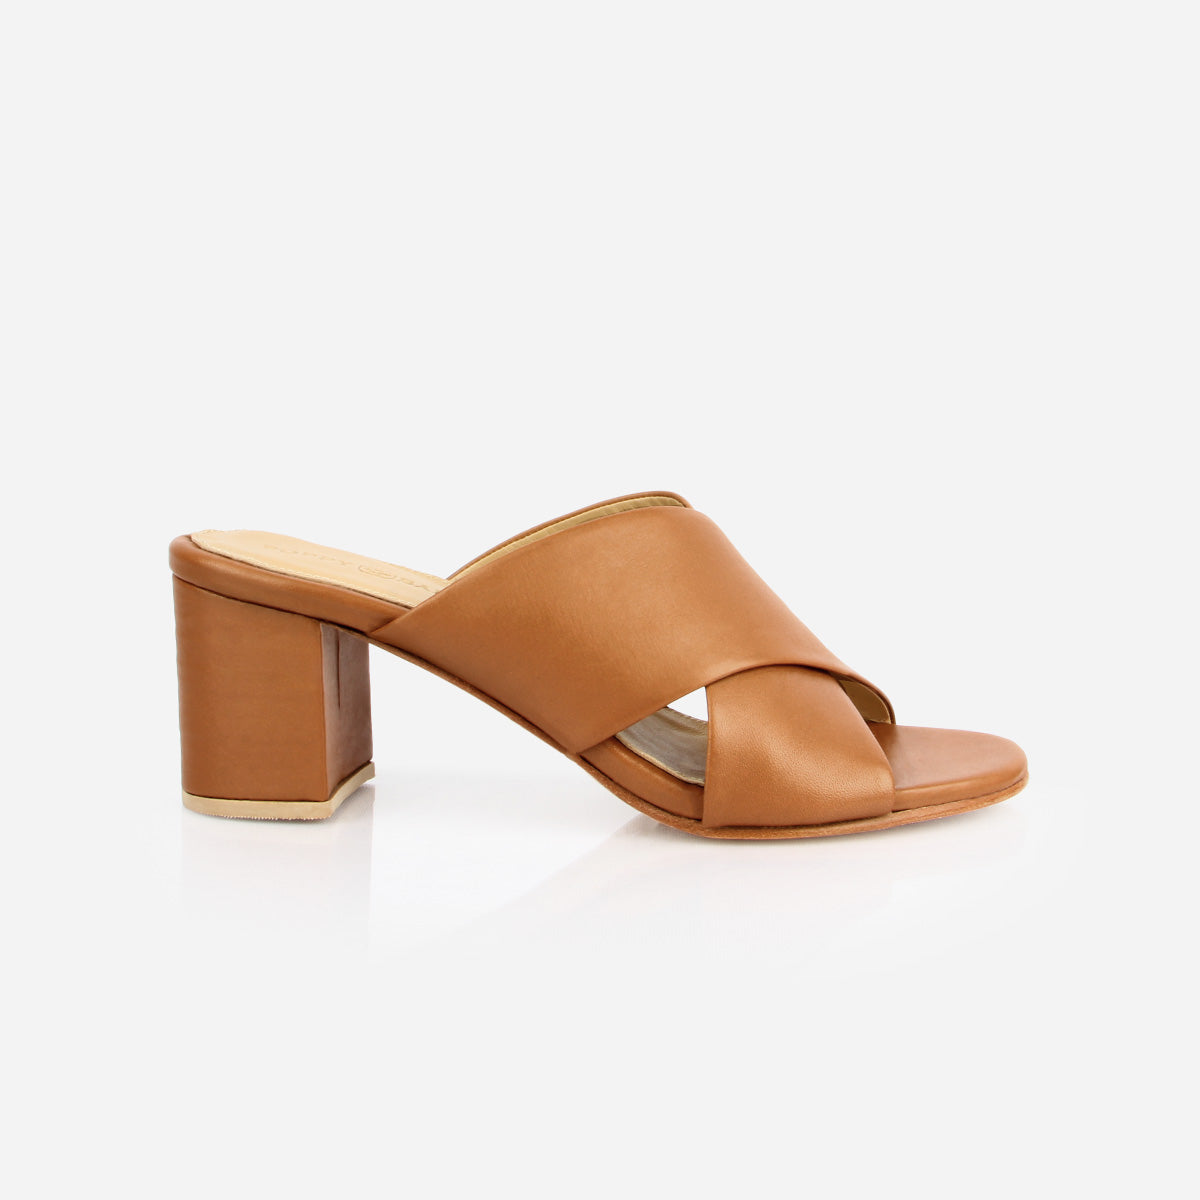 The Niagara Cross Mule Heel Sandal in Almond - Poppy Barley